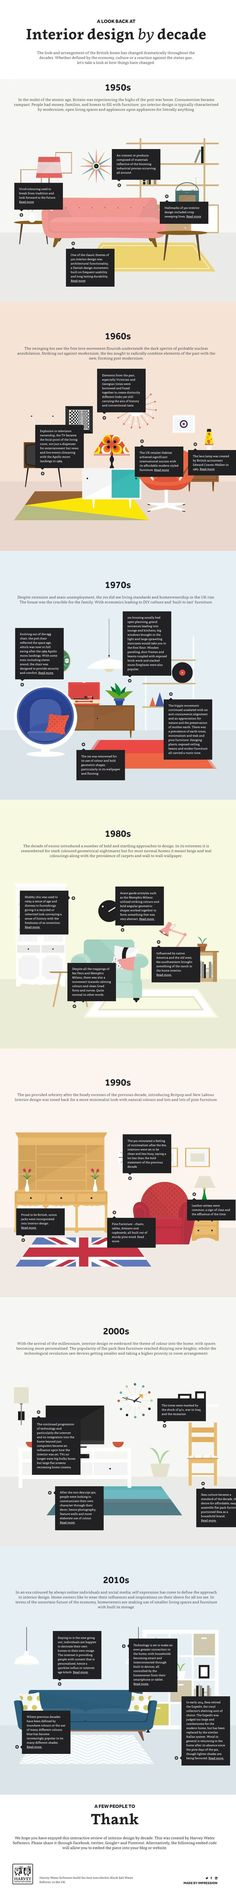 Interior Design: An Interactive History by Decade. https://www.harveywatersofteners.co.uk/history-interior-design